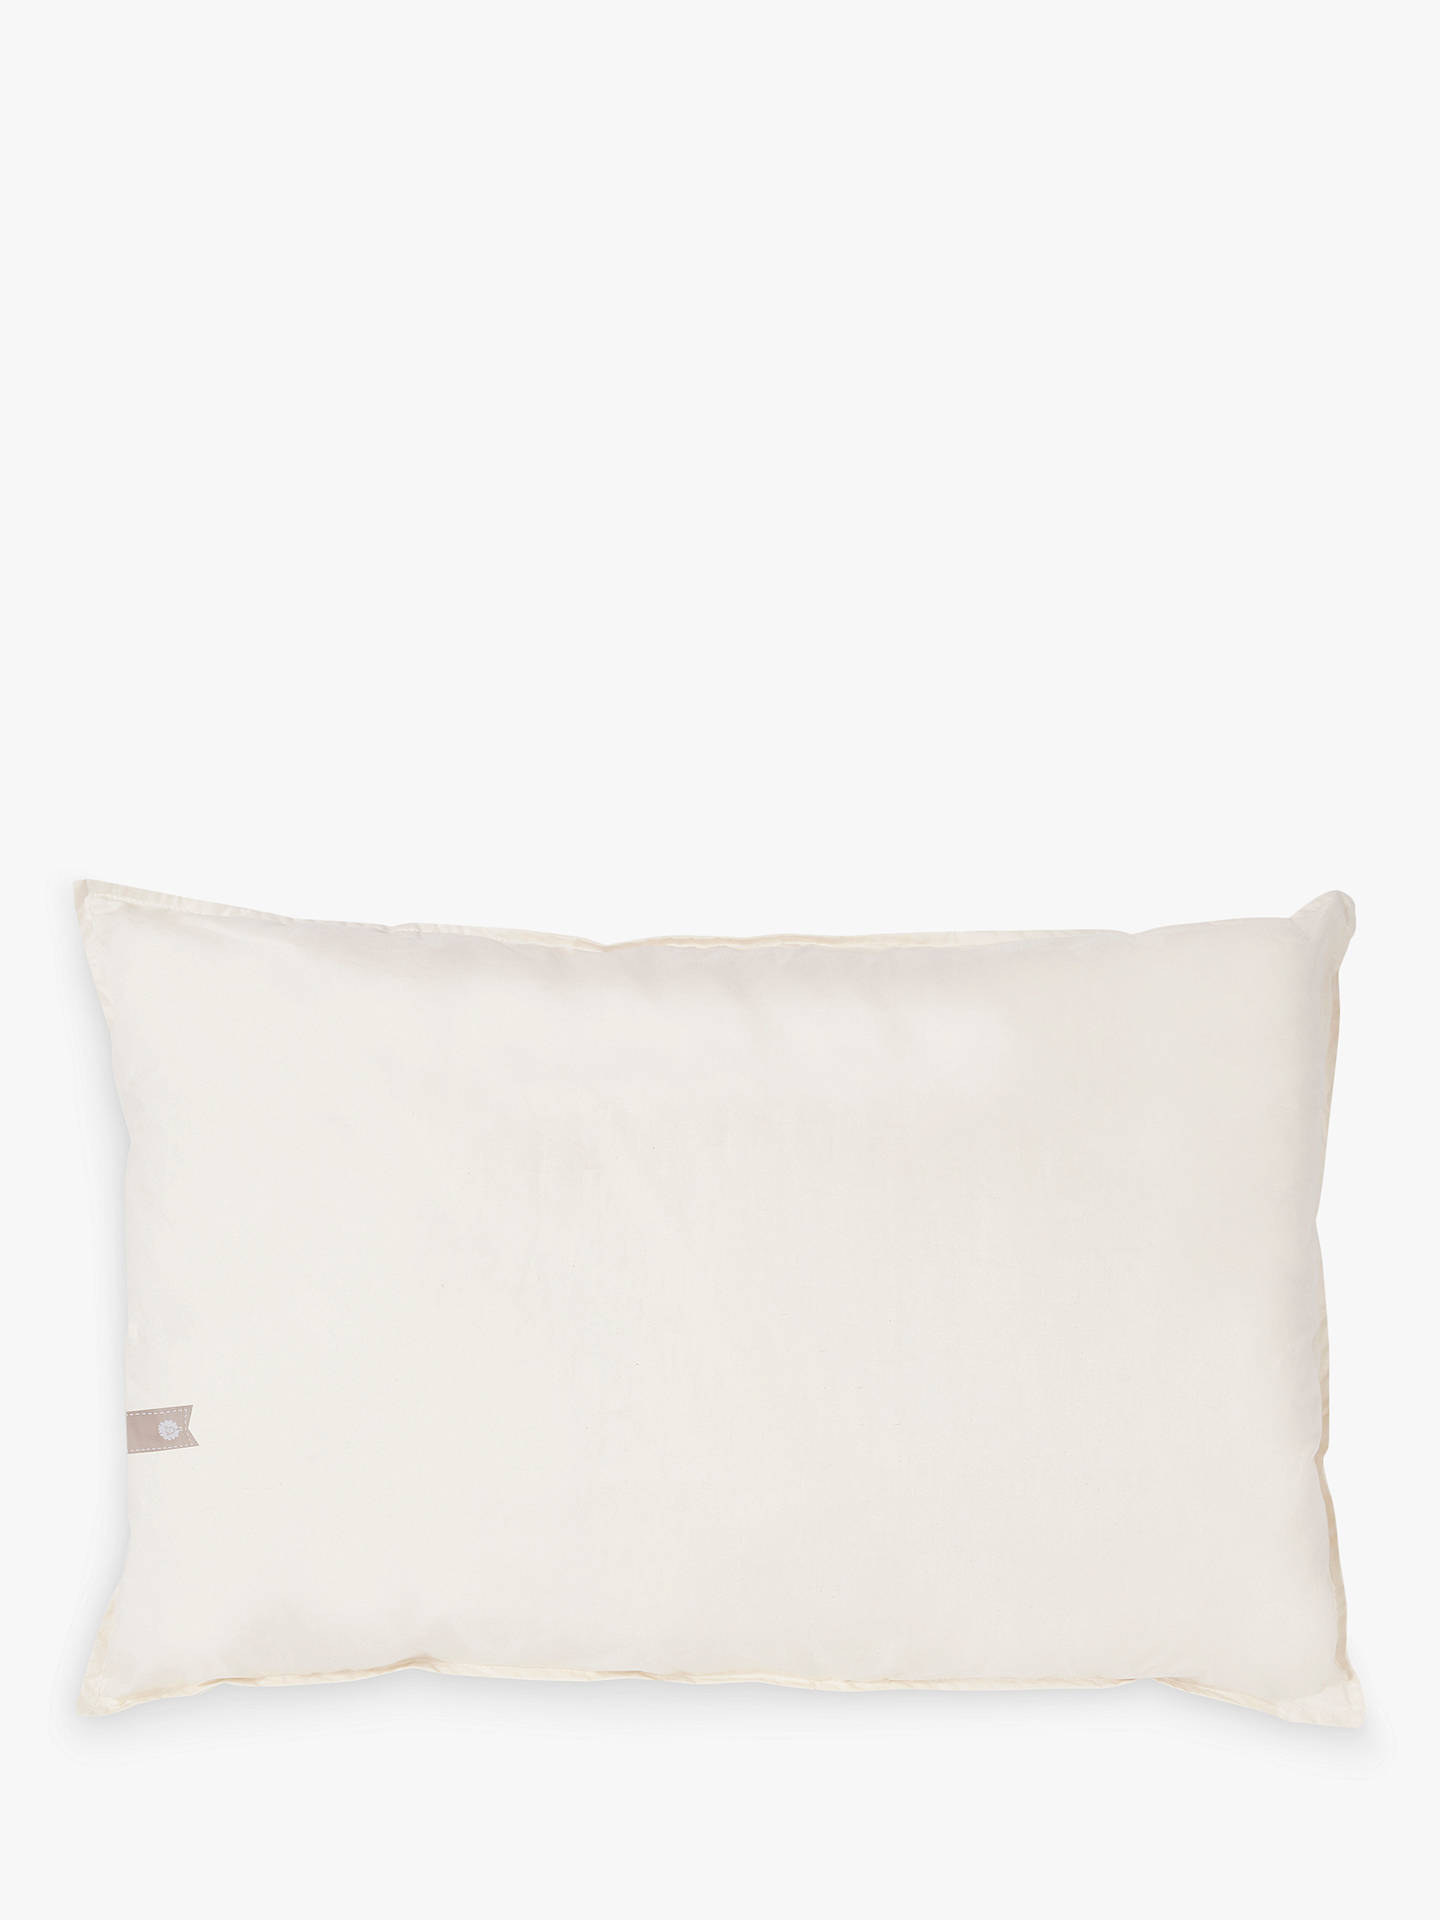 BuyThe Little Green Sheep Baby Organic Wool Pillow Online at johnlewis.com